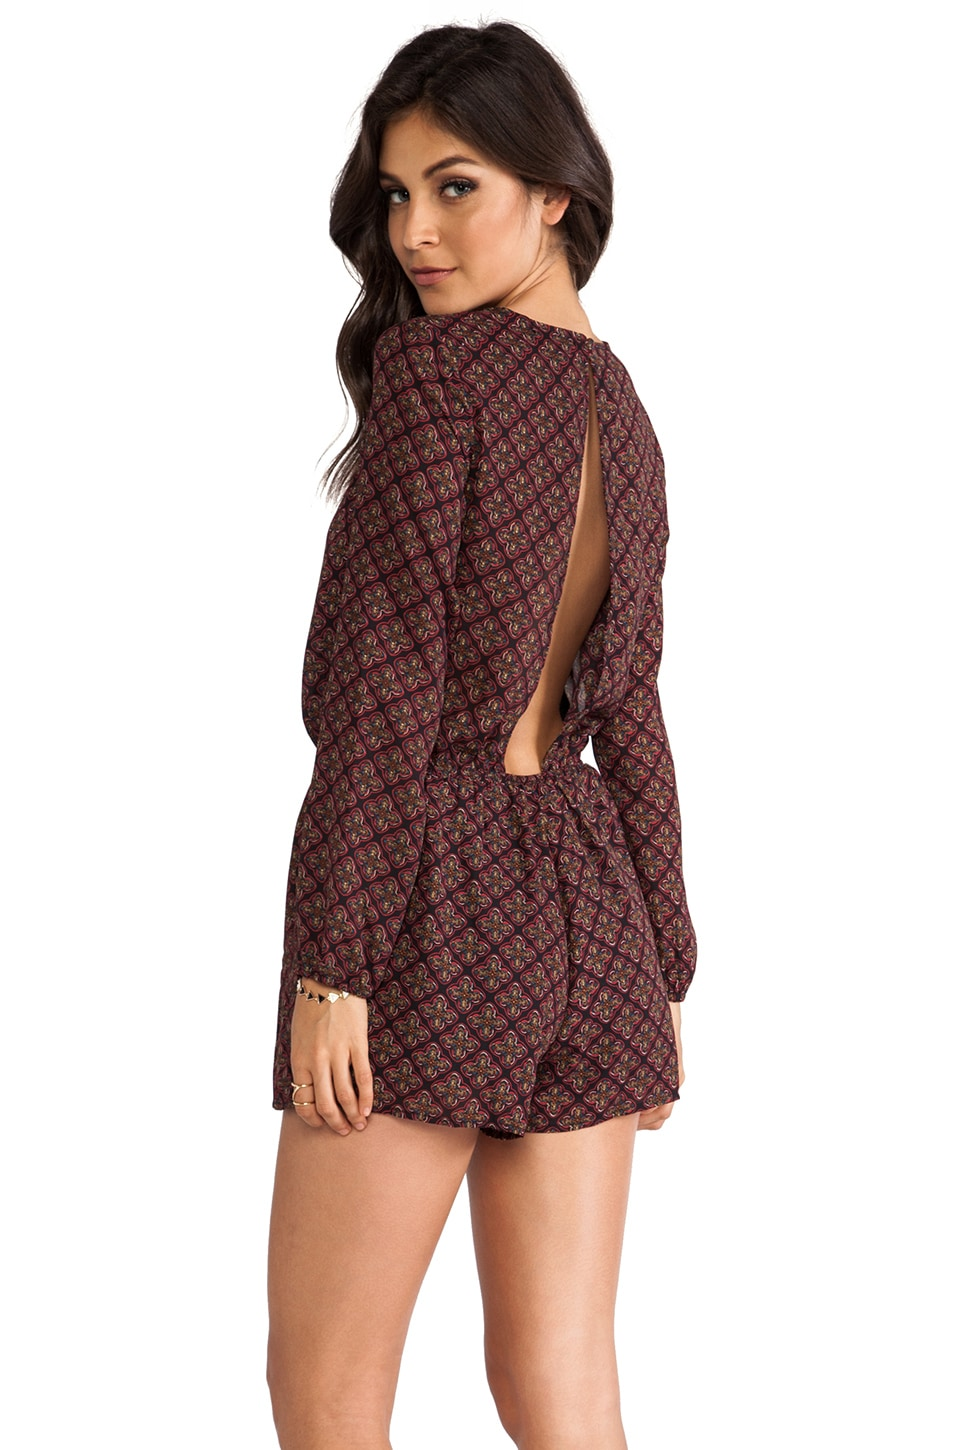 Lucca Couture Long Sleeve Romper in Black